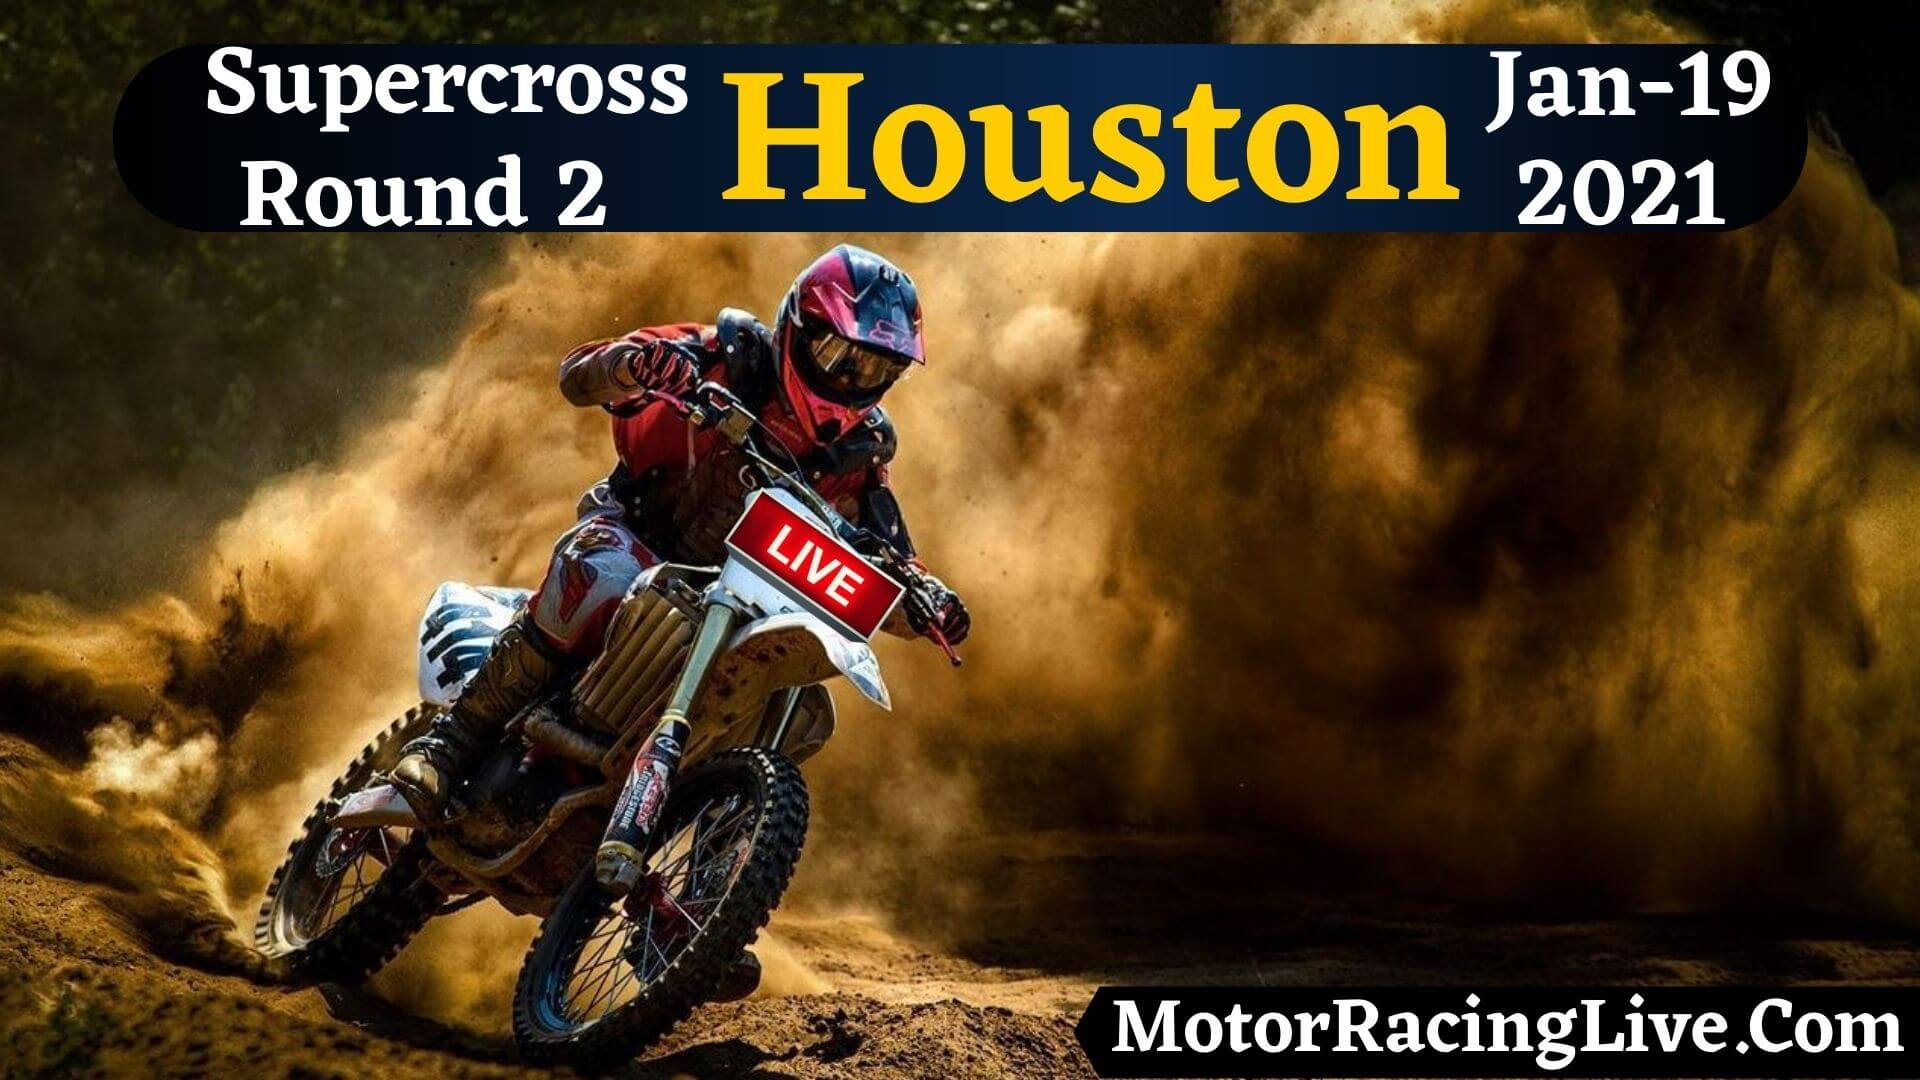 Supercross Houston Round 2 Live Stream 19-Jan 2021